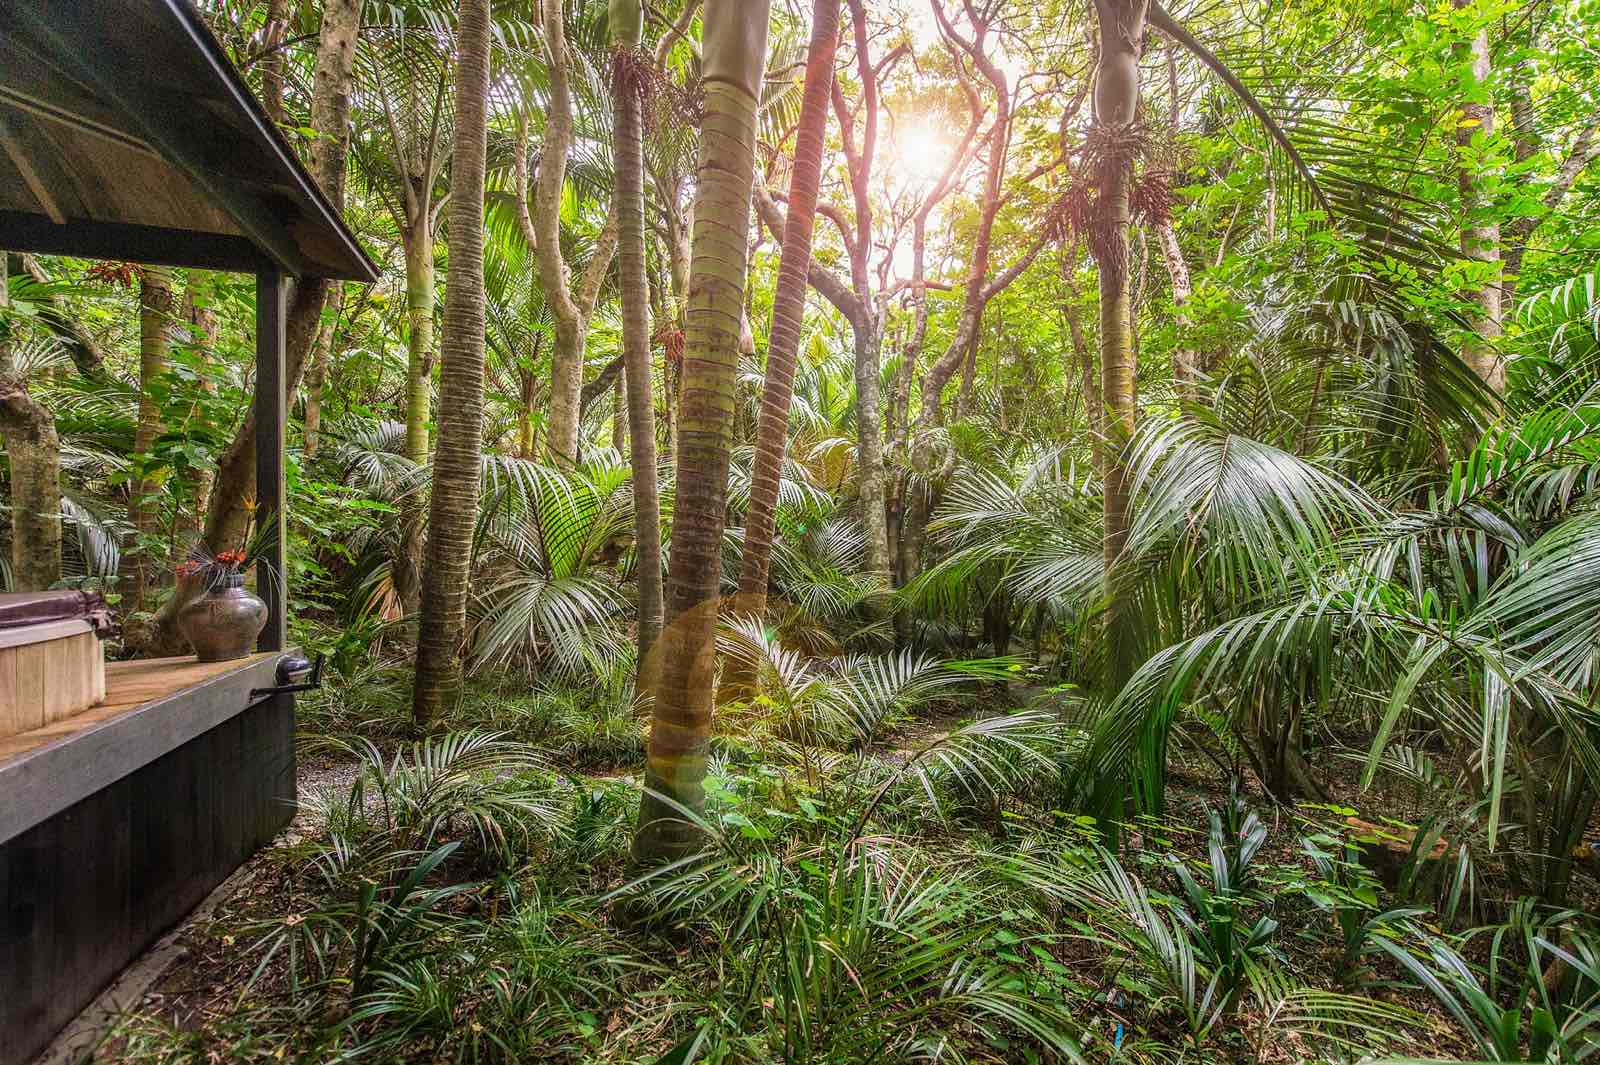 Garden & Heritage Tours - SwirlGreenmantle's own formal gardens have been a local feature enjoyed for decades. However, its native Nikau forest with dense canopy is a subtropical surprise. There are treats also nearby for passionate gardeners with a botanic interest both exotic and native.